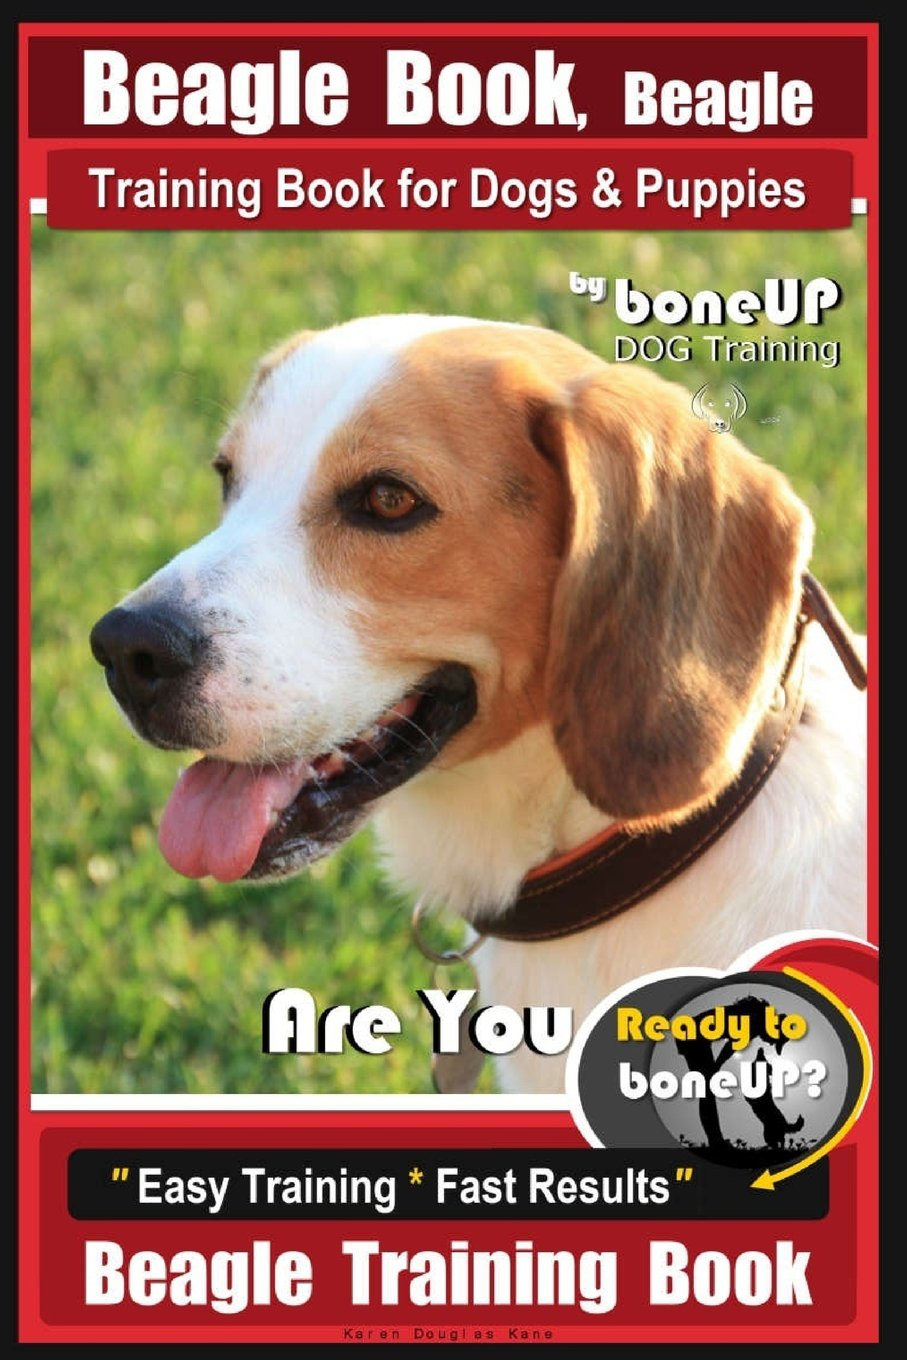 Beagle Book, Beagle Training Book for Dogs & Puppies By BoneUP DOG Training: Are You Ready to Bone up?  Easy Training * Fast Results Beagle Training Book